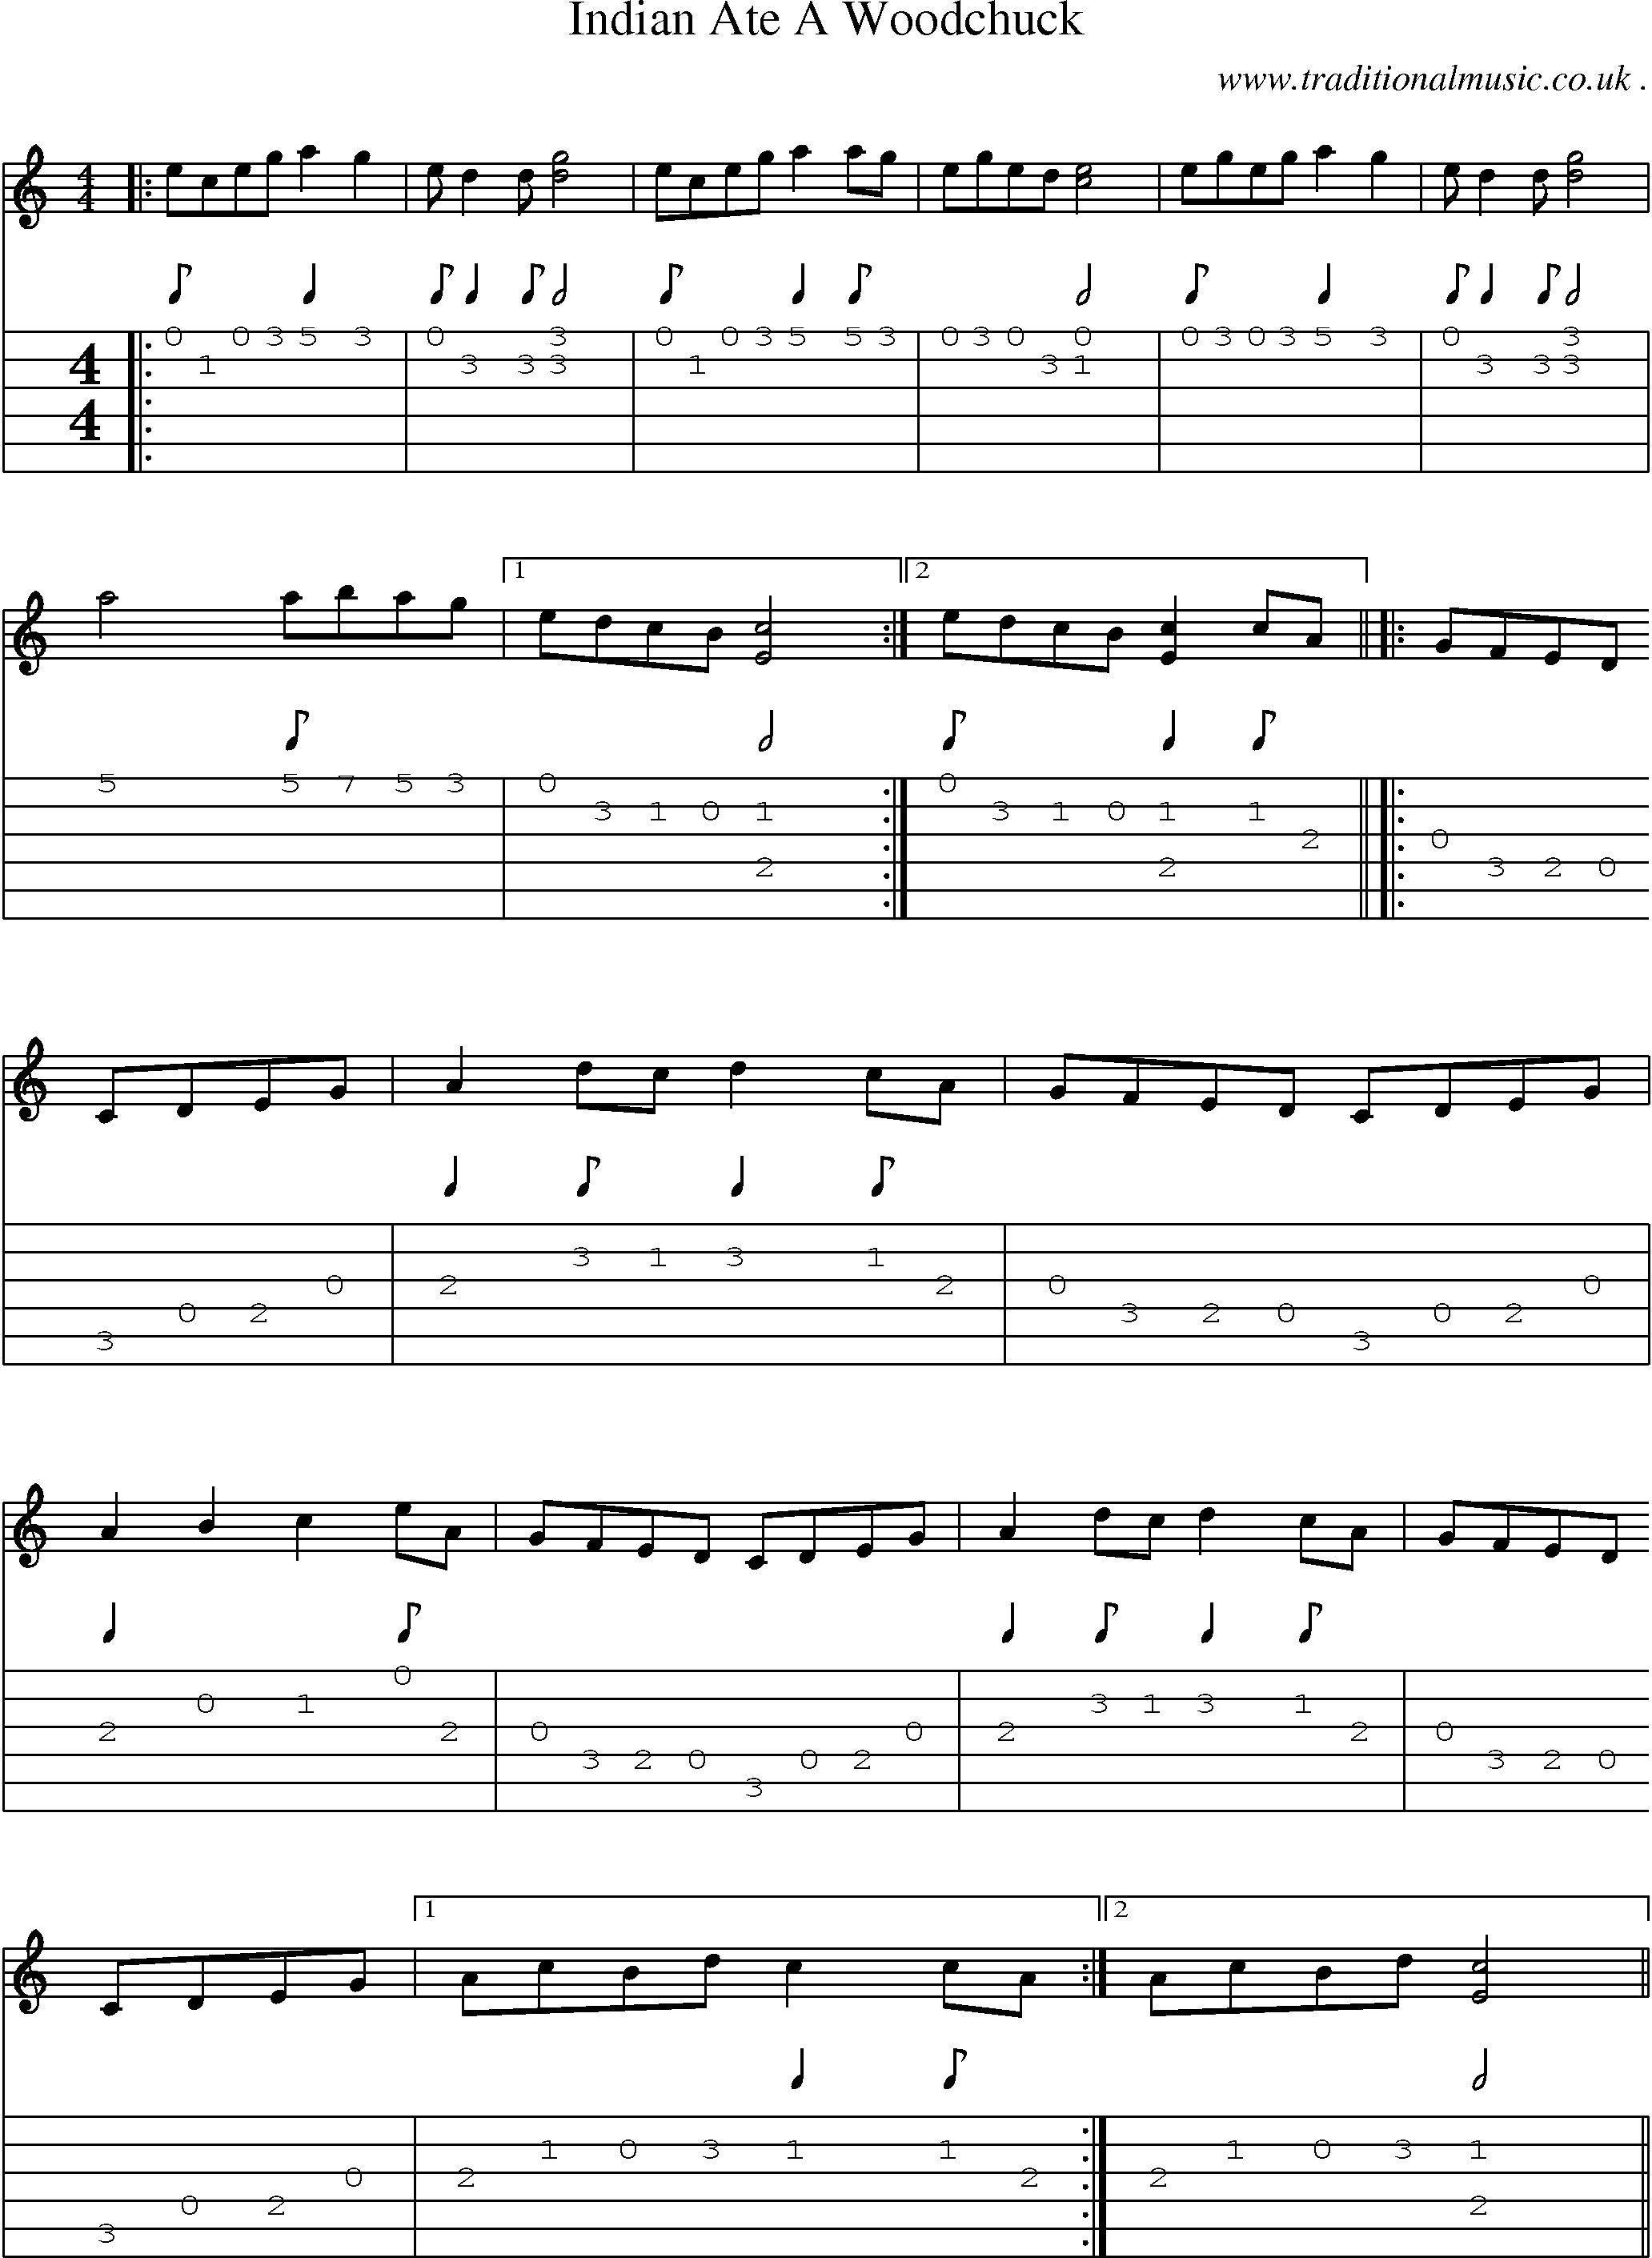 Common Session Tunes Scores And Tabs For Guitar Indian Ate A